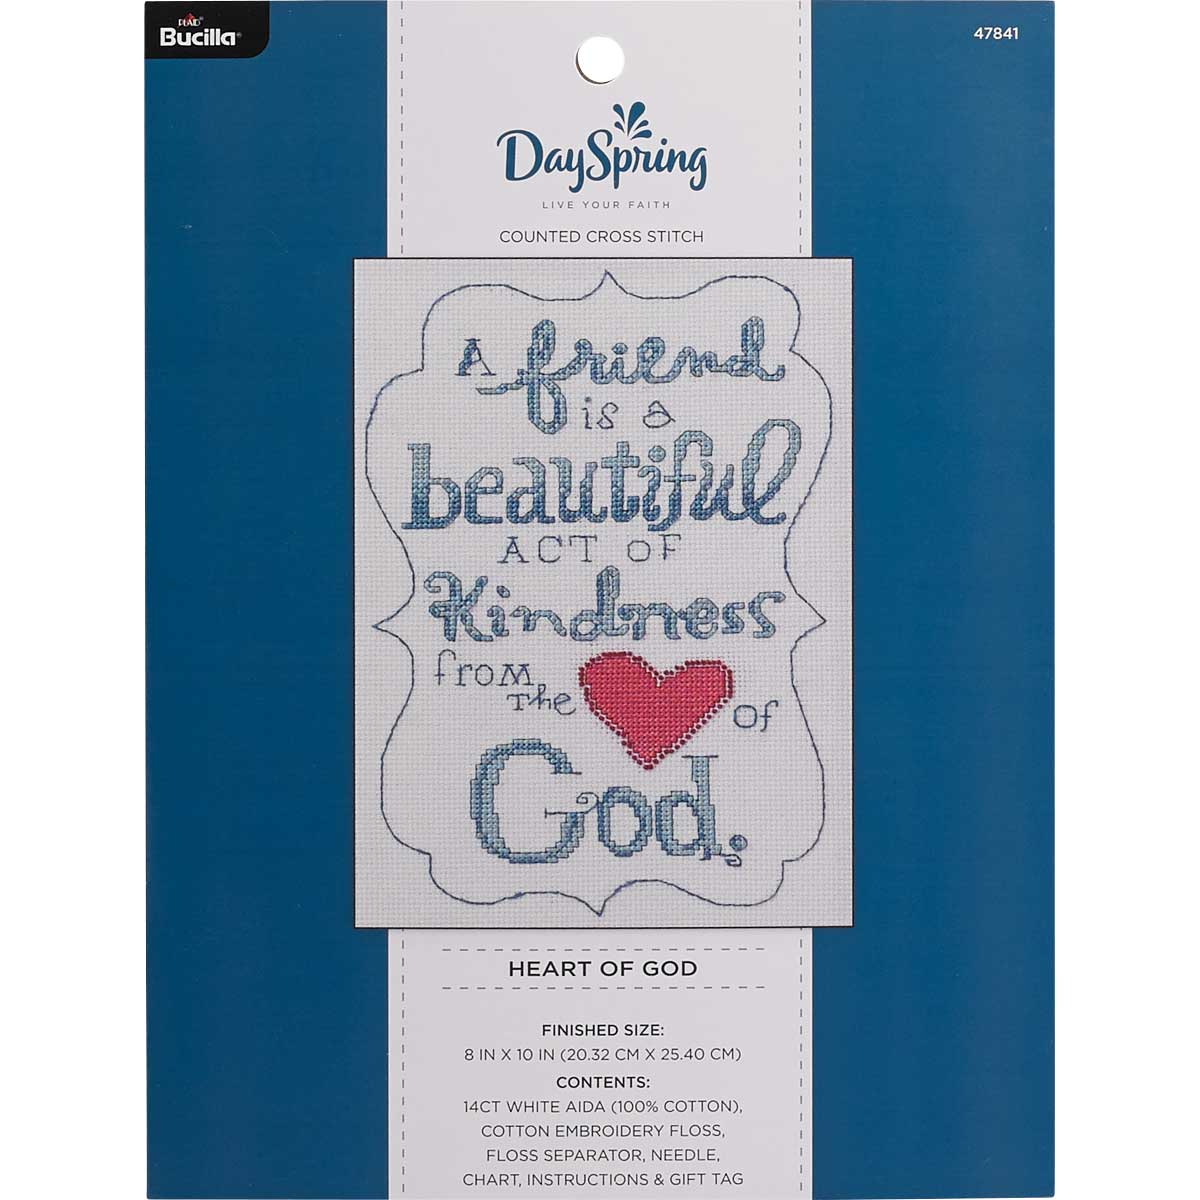 Bucilla ® Counted Cross Stitch - Picture Kits - DaySpring - Heart of God - 47841